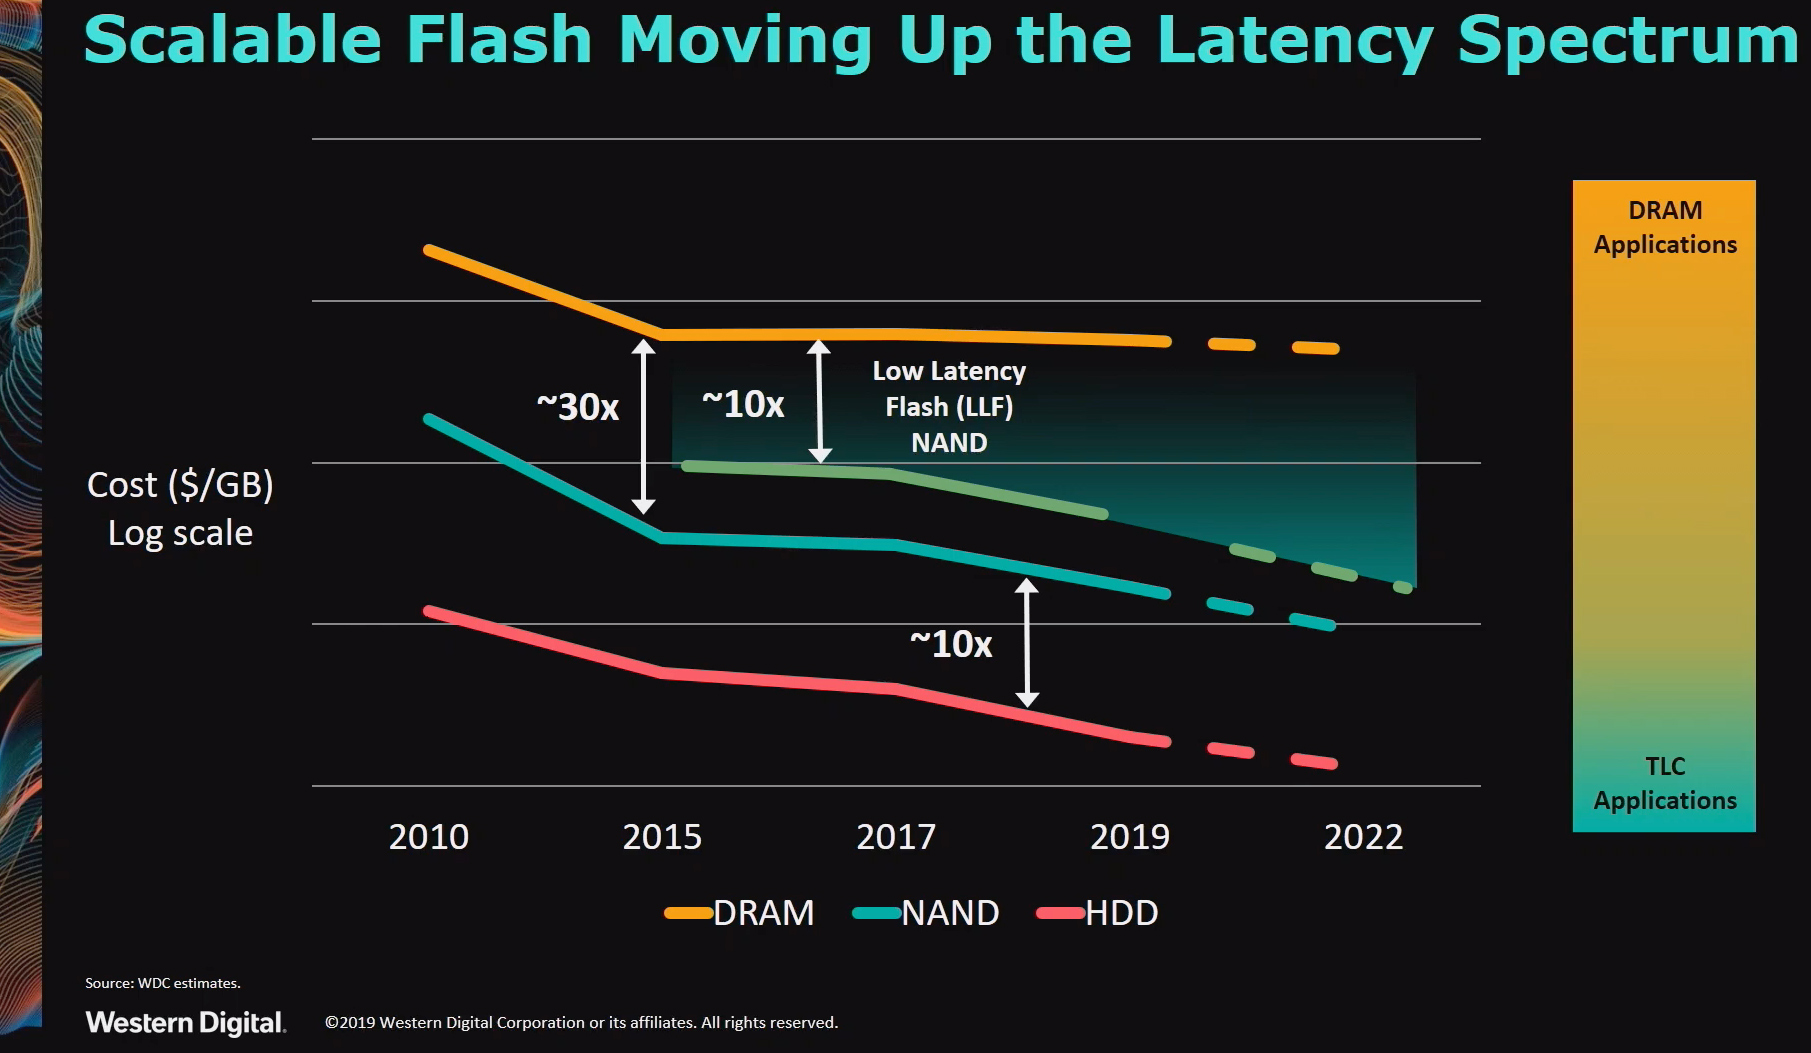 Western Digital Develops Low-Latency Flash to Compete with Intel Optane